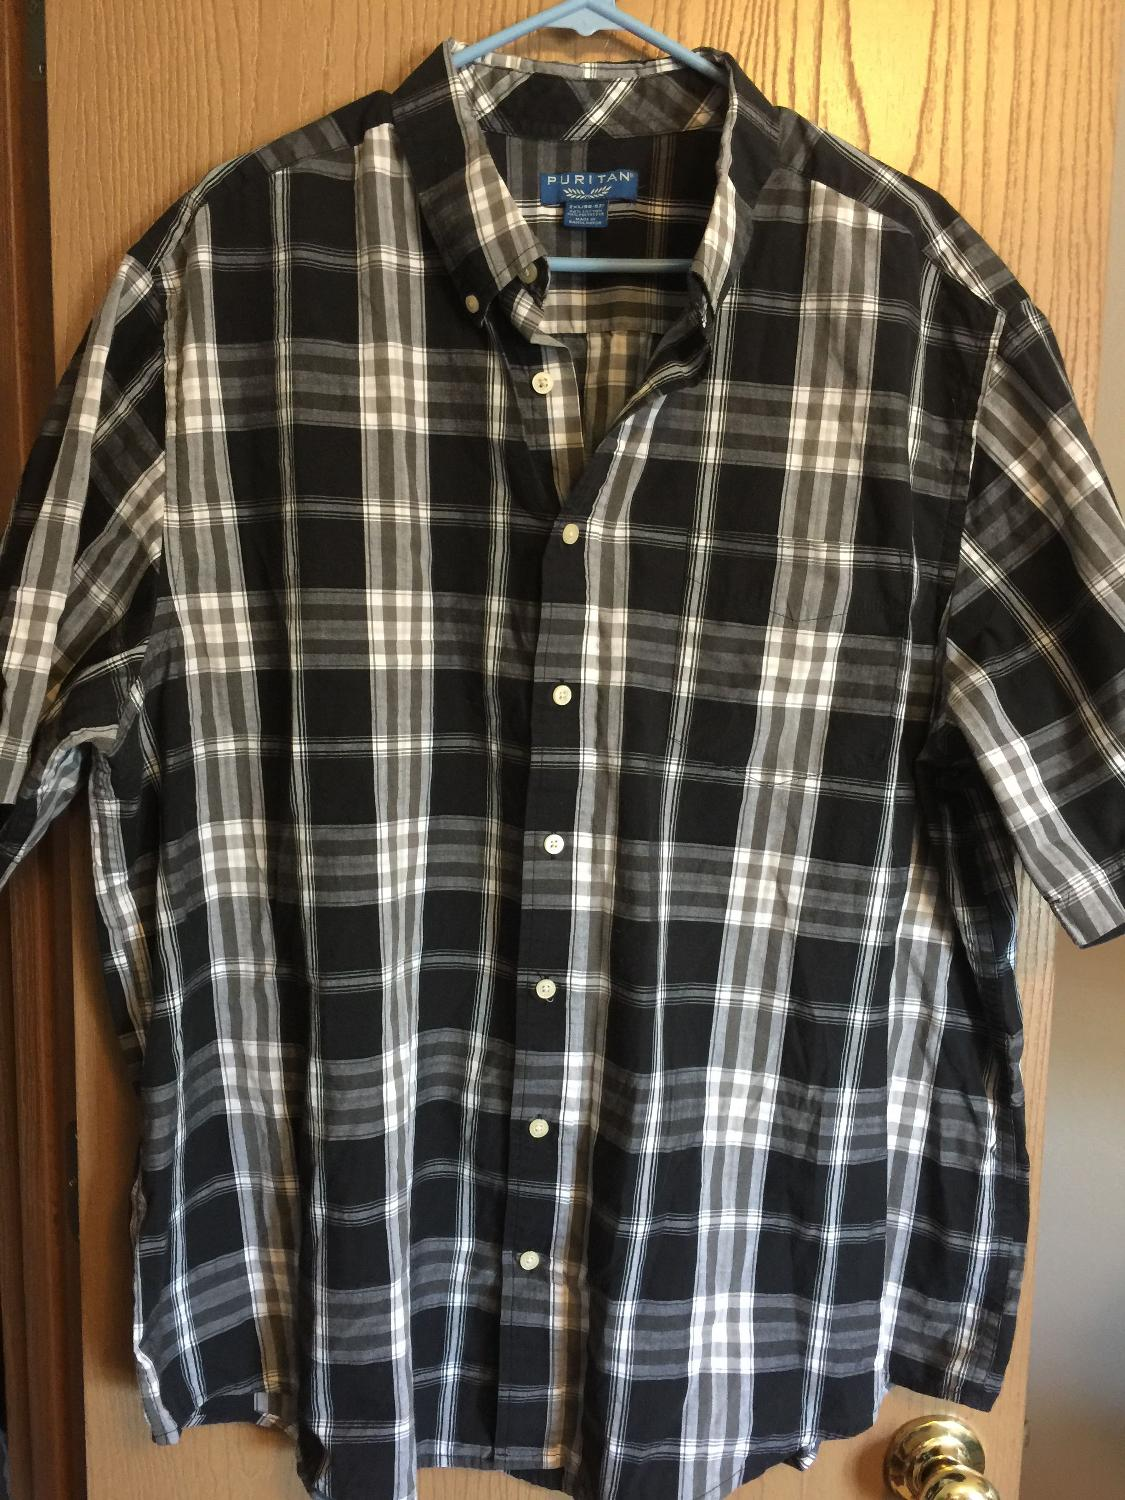 Find More Mens Puritan Brand Short Sleeve Shirt Size 2xl For Sale